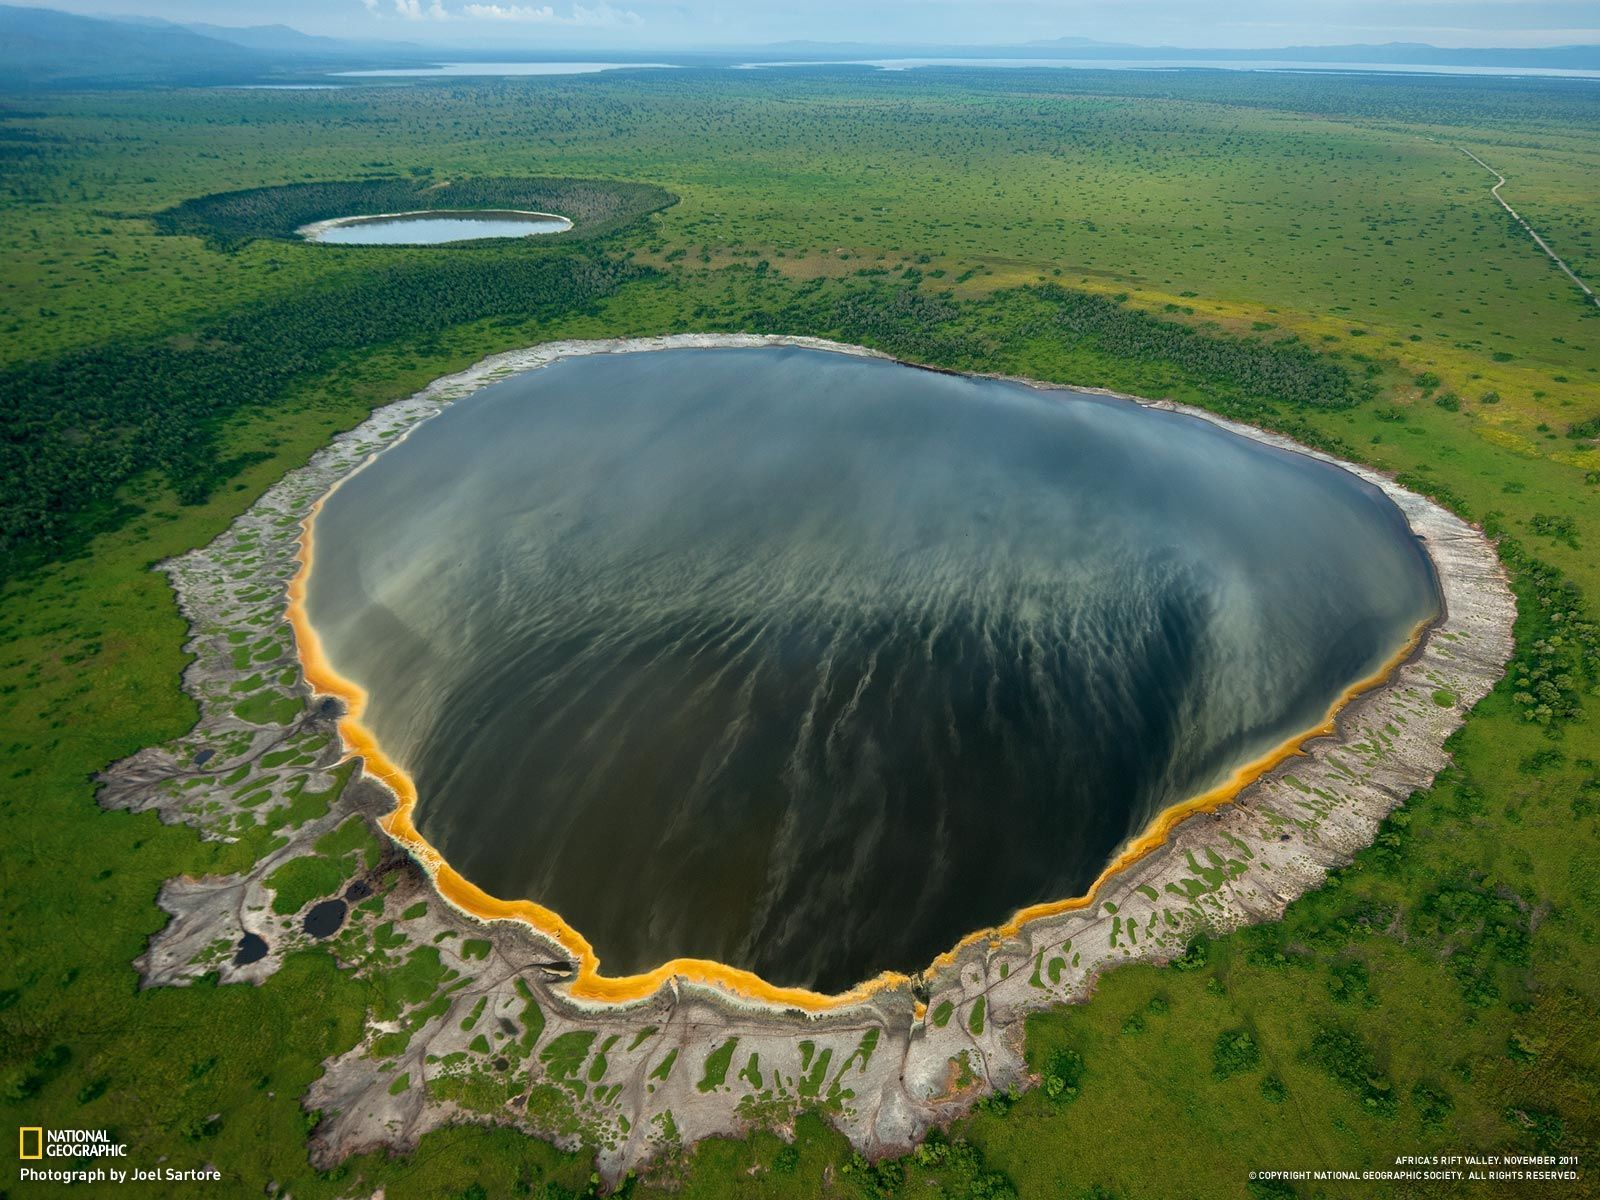 Africa's Great Rift Valley is a 6,000-mile crack (fissure) in the earth's crust, stretching from Lebanon to Mozambique.